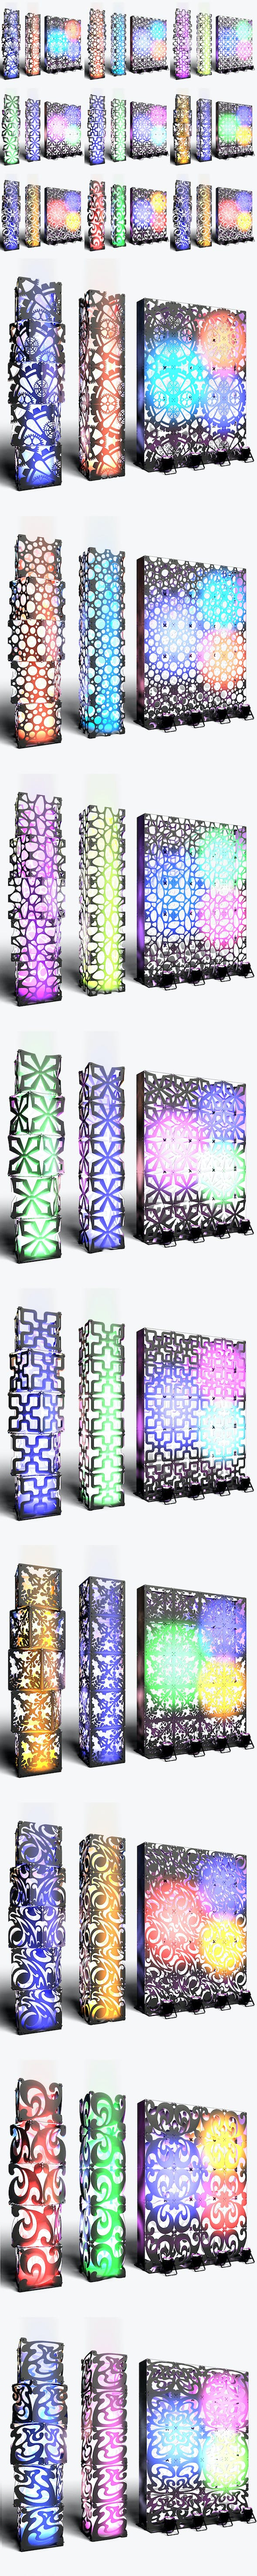 Stage Decor Collection 01 (Modular Wall Column 9 Pieces) - 3DOcean Item for Sale